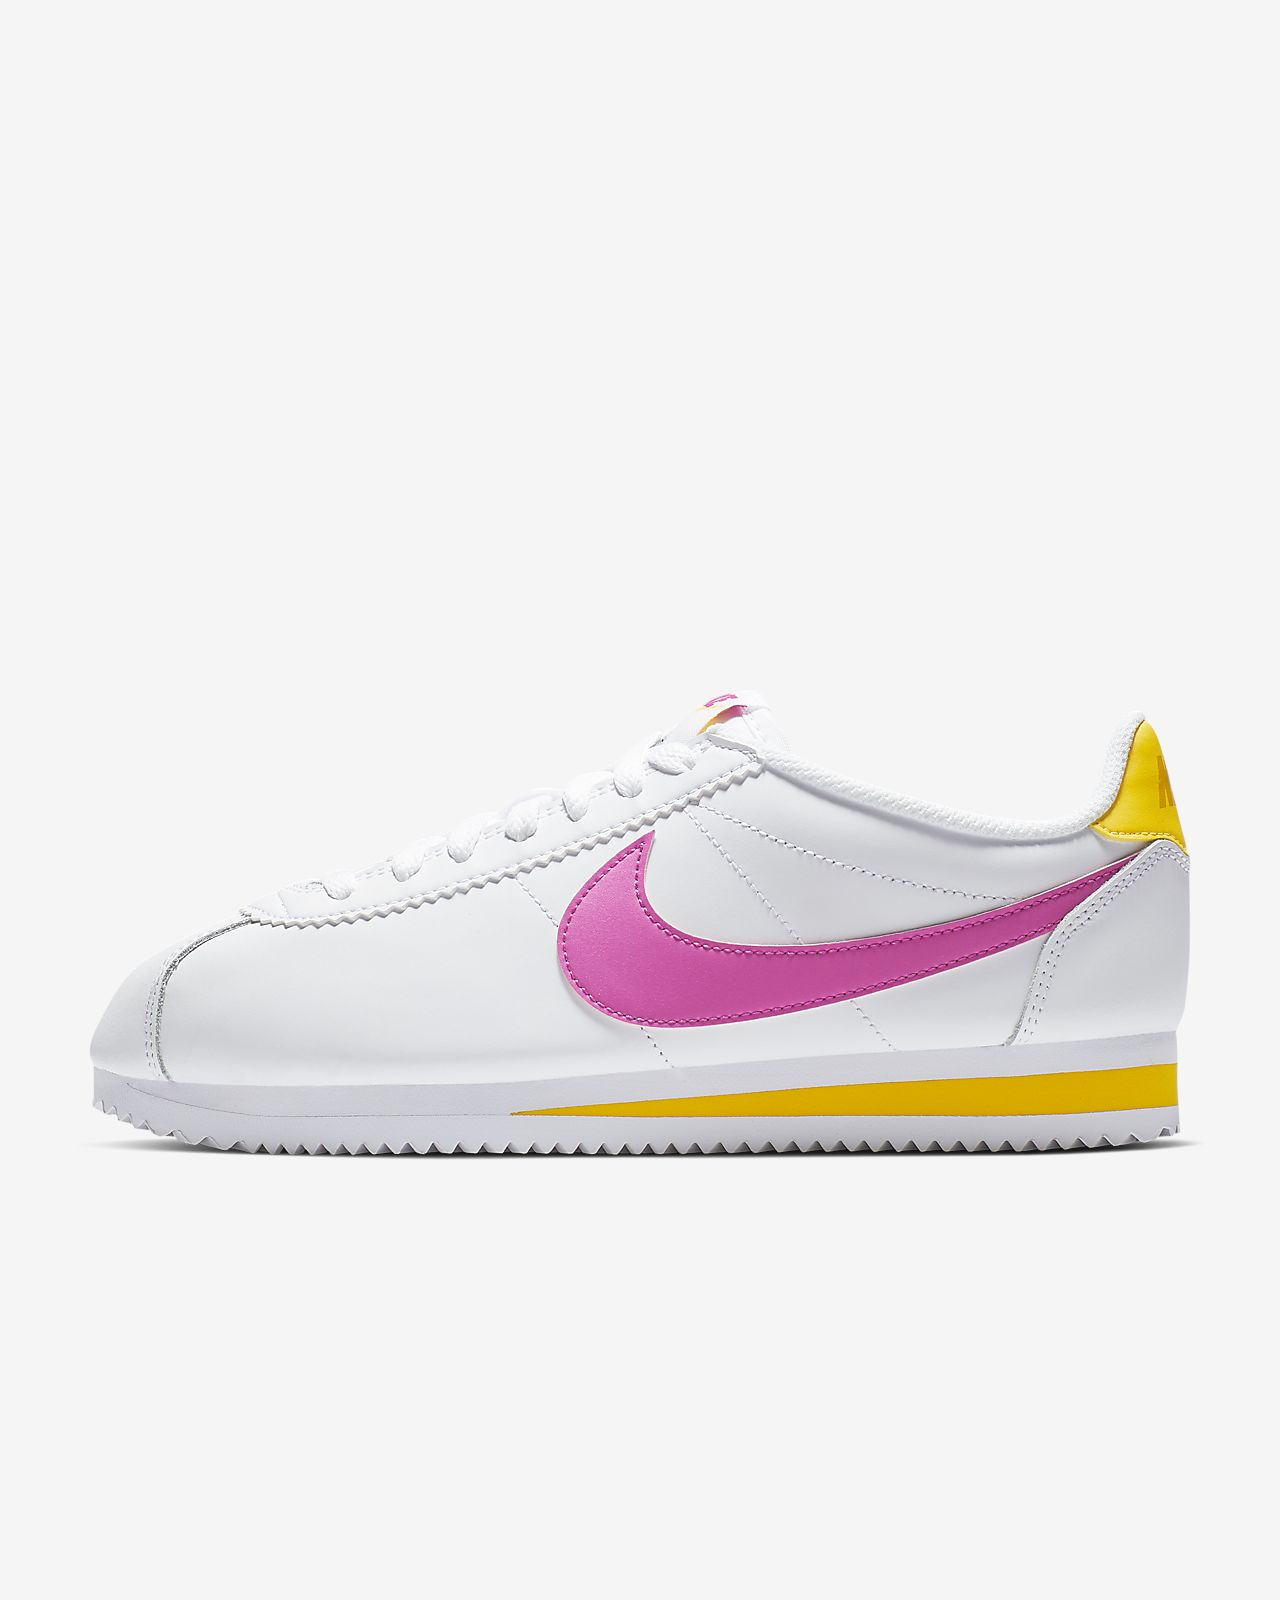 the latest 231bd 63ddc ... Sko Nike Classic Cortez för kvinnor